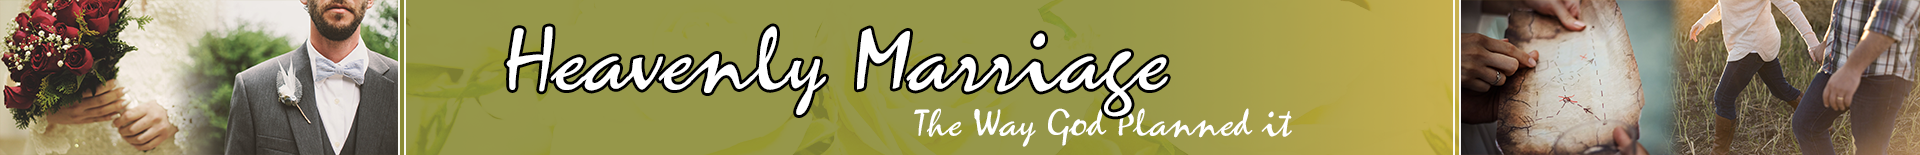 Heavenly Marriage Seminar